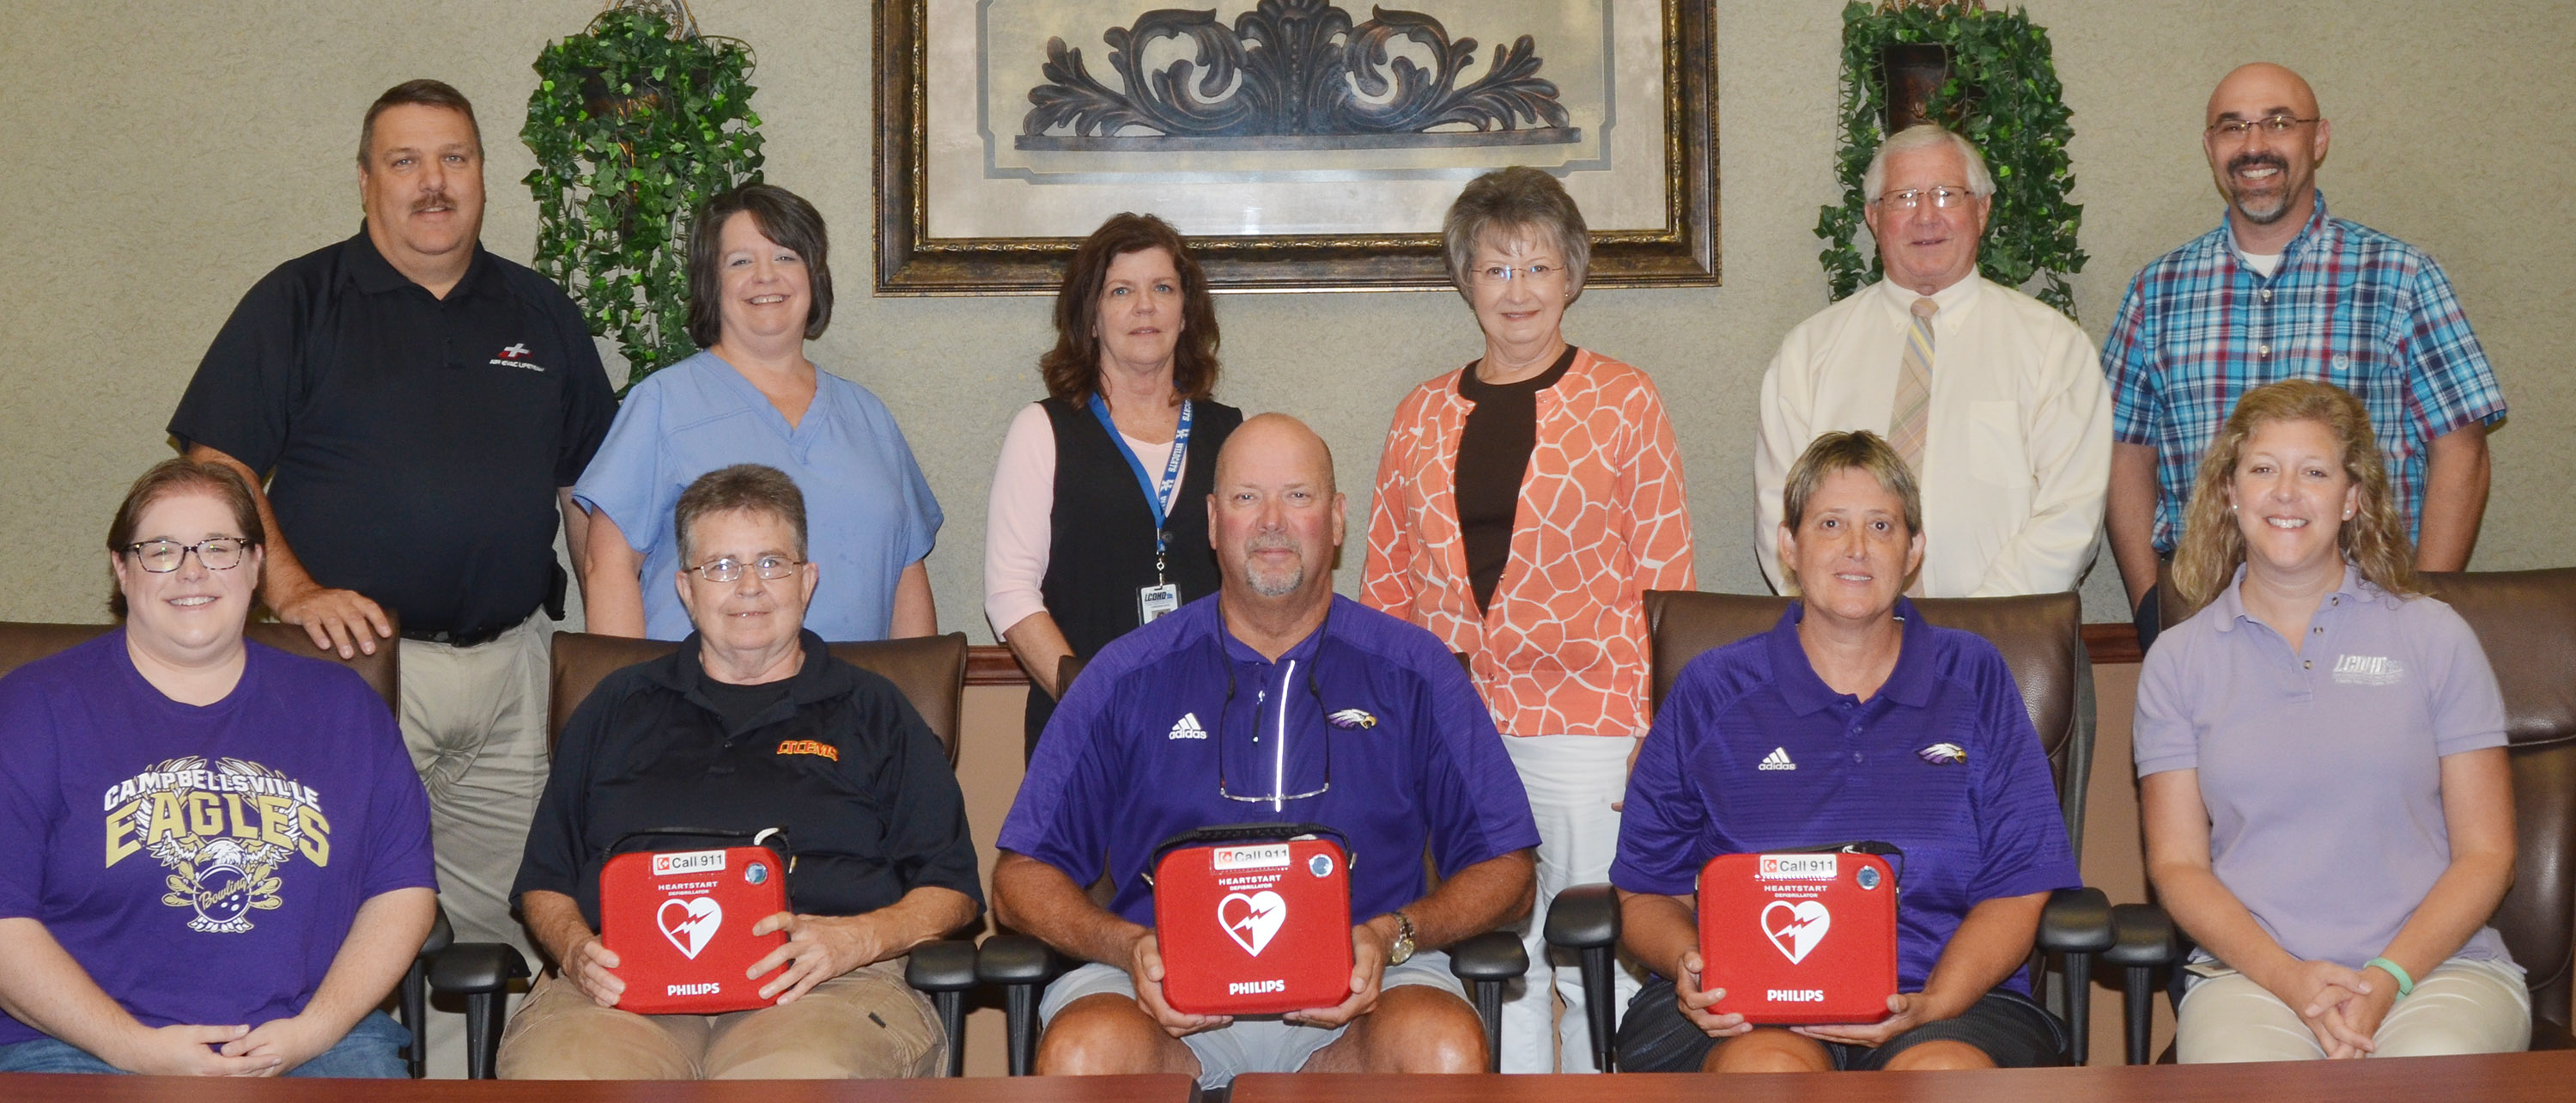 Campbellsville Independent Schools has received a grant from Taylor County Board of Health members to purchase three AED machines to be used at Campbellsville elementary, middle and high schools. The District partnered with Taylor County Health Department and Campbellsville/Taylor County EMS personnel to submit the grant proposal and make the purchase. From left, front, are Calen McKinney, public information officer/grant writer for Campbellsville Independent Schools; Denise Gupton, critical care paramedic/major at Campbellsville/Taylor County EMS; Tim Davis, Campbellsville High School athletic director; Katie Wilkerson, Campbellsville Middle School athletic director; and Jackie Hodges, health educator at Taylor County Health Department. Back, Dan Durham, Board of Health member and senior program director at Air Evac Lifeteam; Allison Griffiths, Taylor County Health Department office manager; Ruthie Bender, Taylor County Health Department nursing supervisor; Loretta Hash, Board of Health member and registered nurse representative for Taylor County; Eddie Rogers, Board of Health member and Taylor County judge/executive; and Shawn Crabtree, executive director at Lake Cumberland District Health Department.